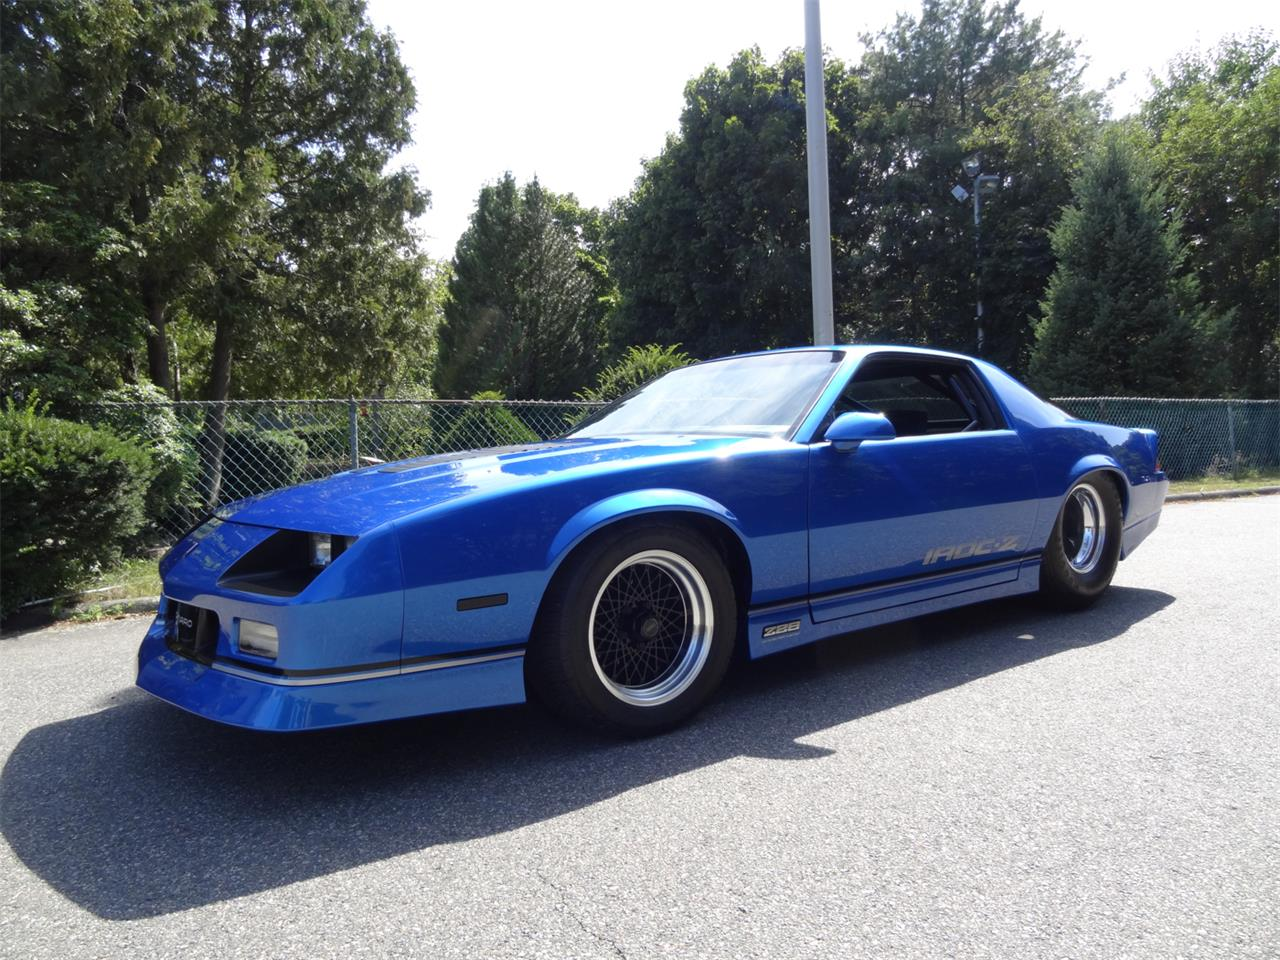 Large Picture of 1983 Camaro IROC Z28 located in Hingham Massachusetts - $30,000.00 Offered by a Private Seller - QUEA